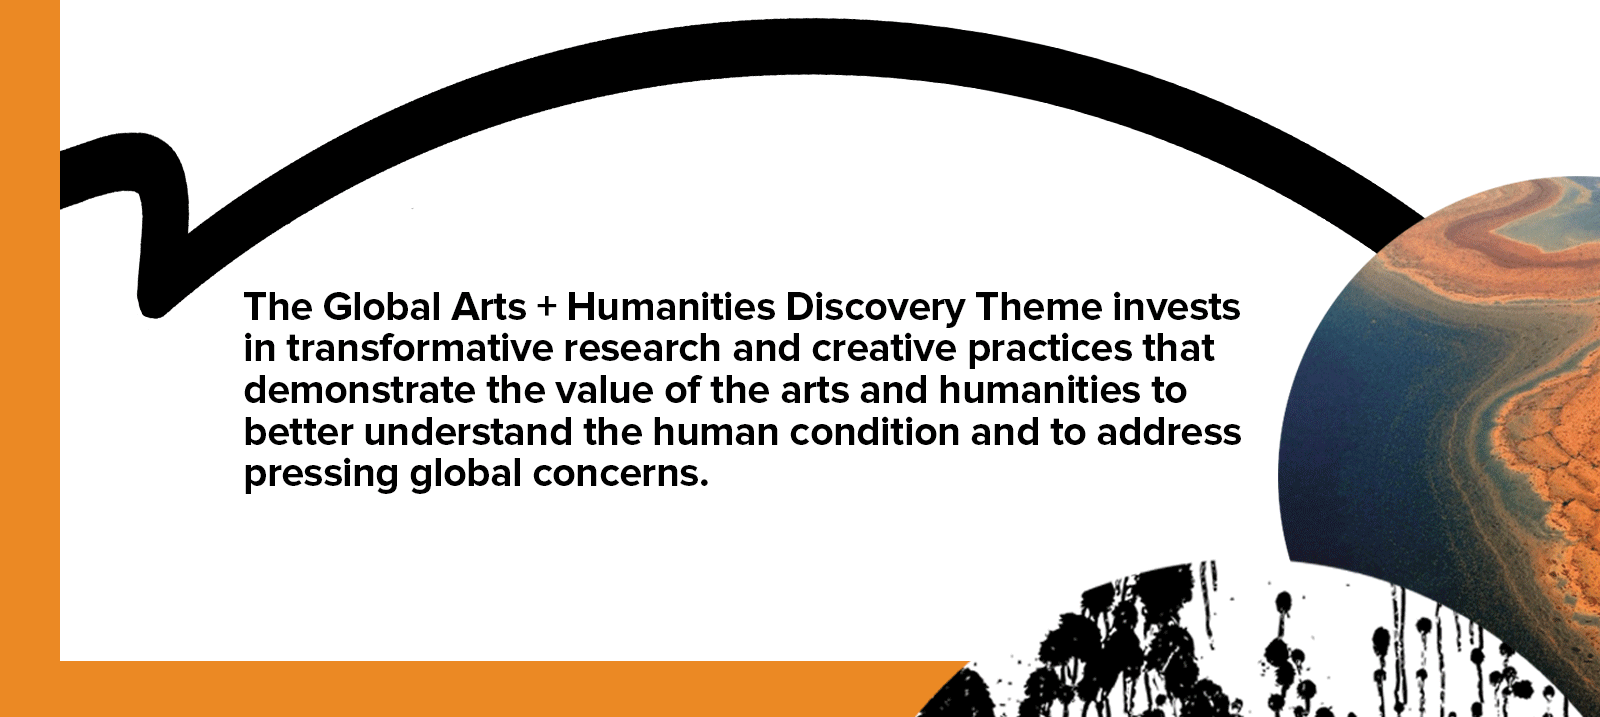 Text: The Global Arts + Humanities Discovery Theme  invests in transformative research and creative practices that demonstrate the value of the  arts and humanities to better understand the  human condition and to address pressing  global concerns.